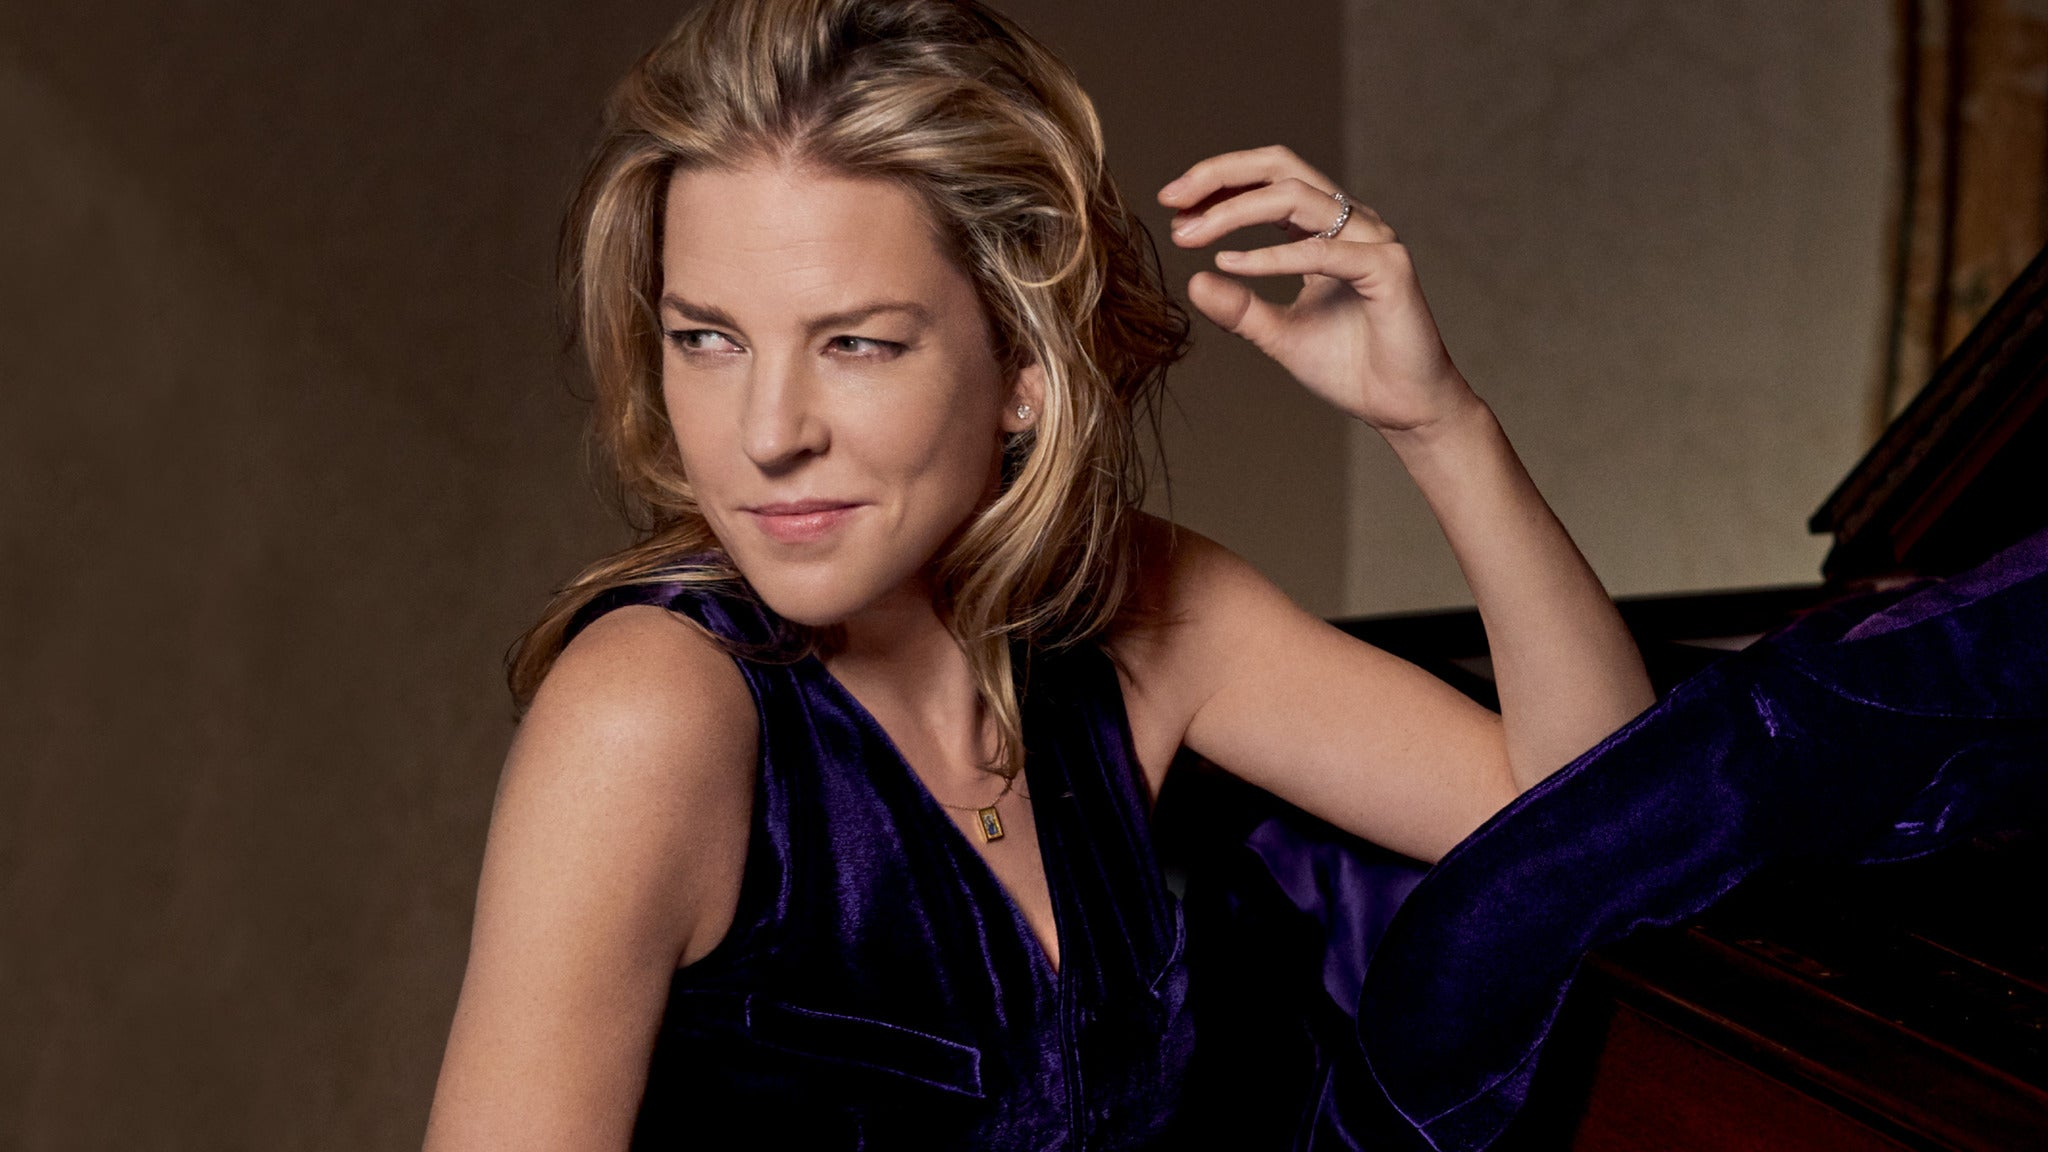 Diana Krall at Wente Vineyards